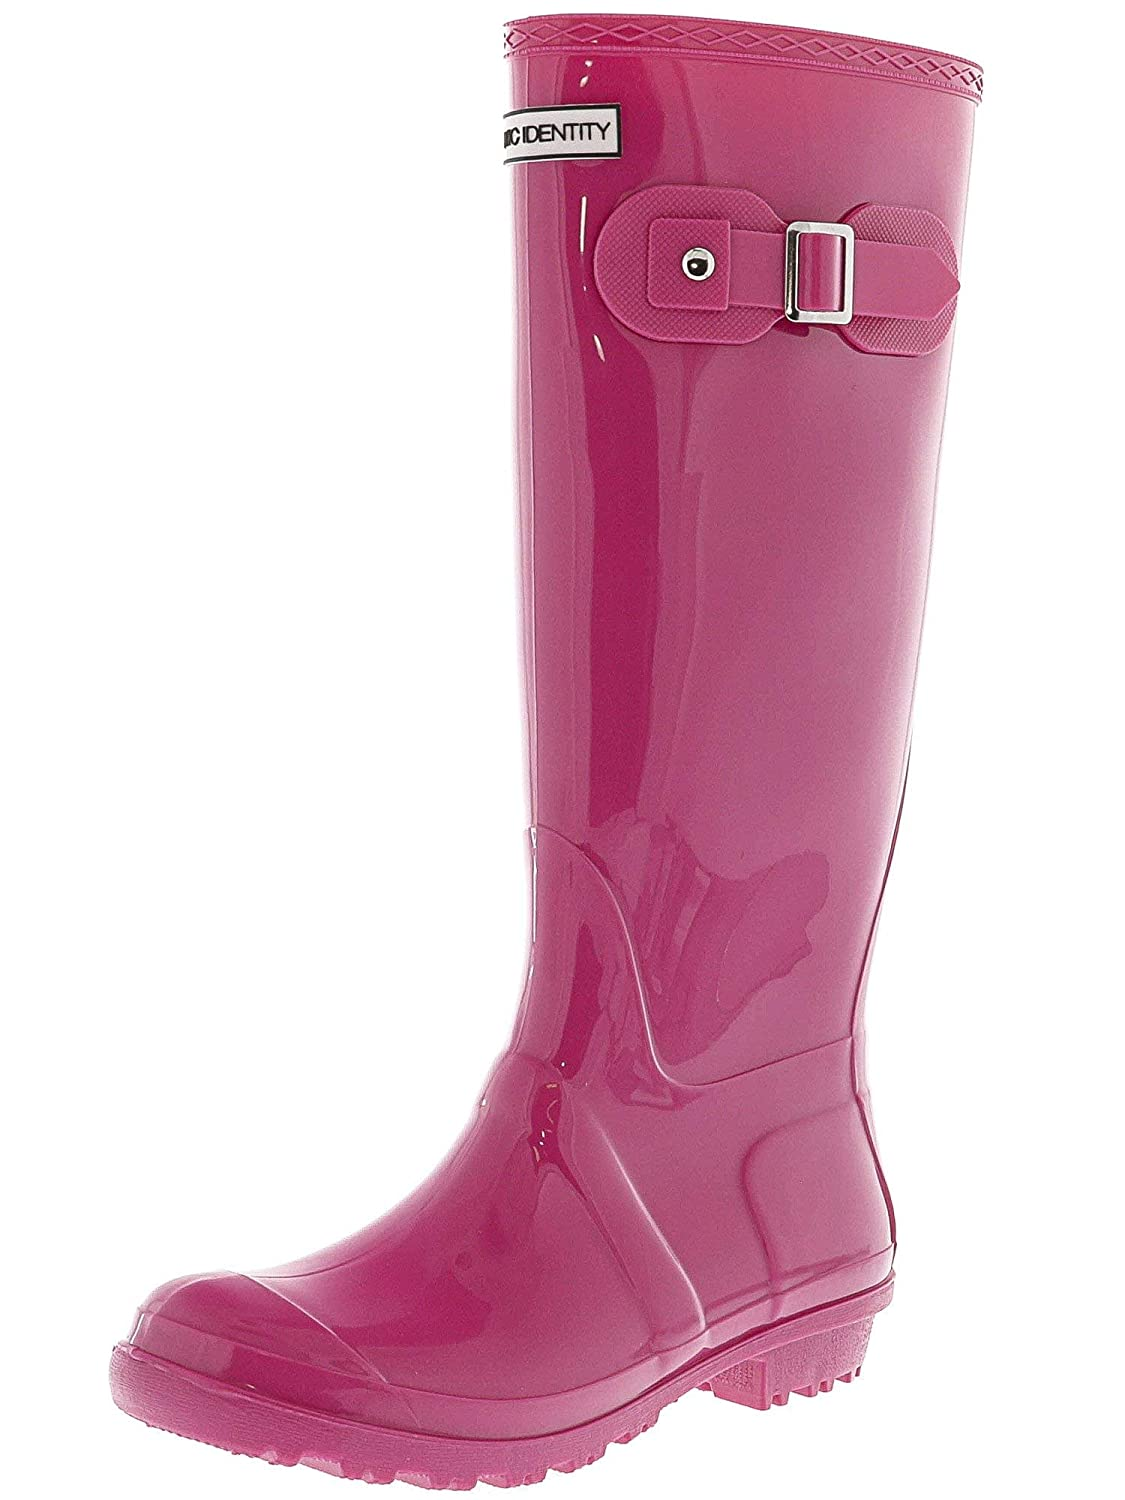 Gloss Pink Exotic Identity Original Tall Rain Boots